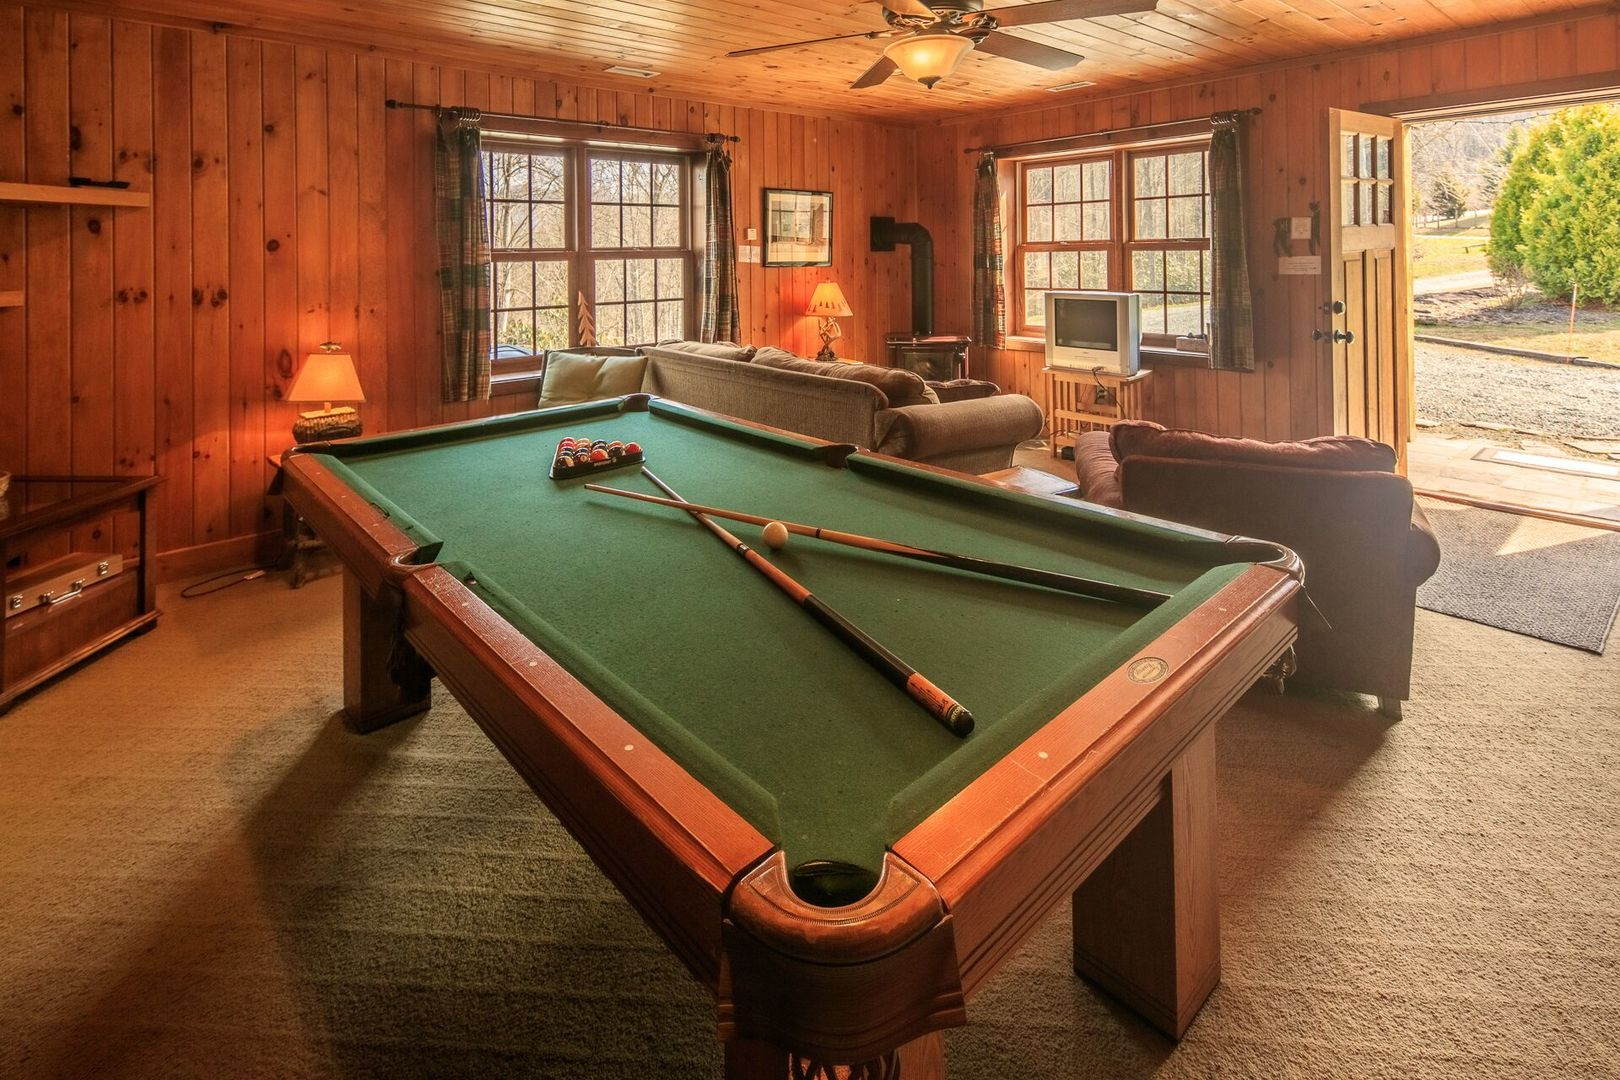 The lower level area with game table